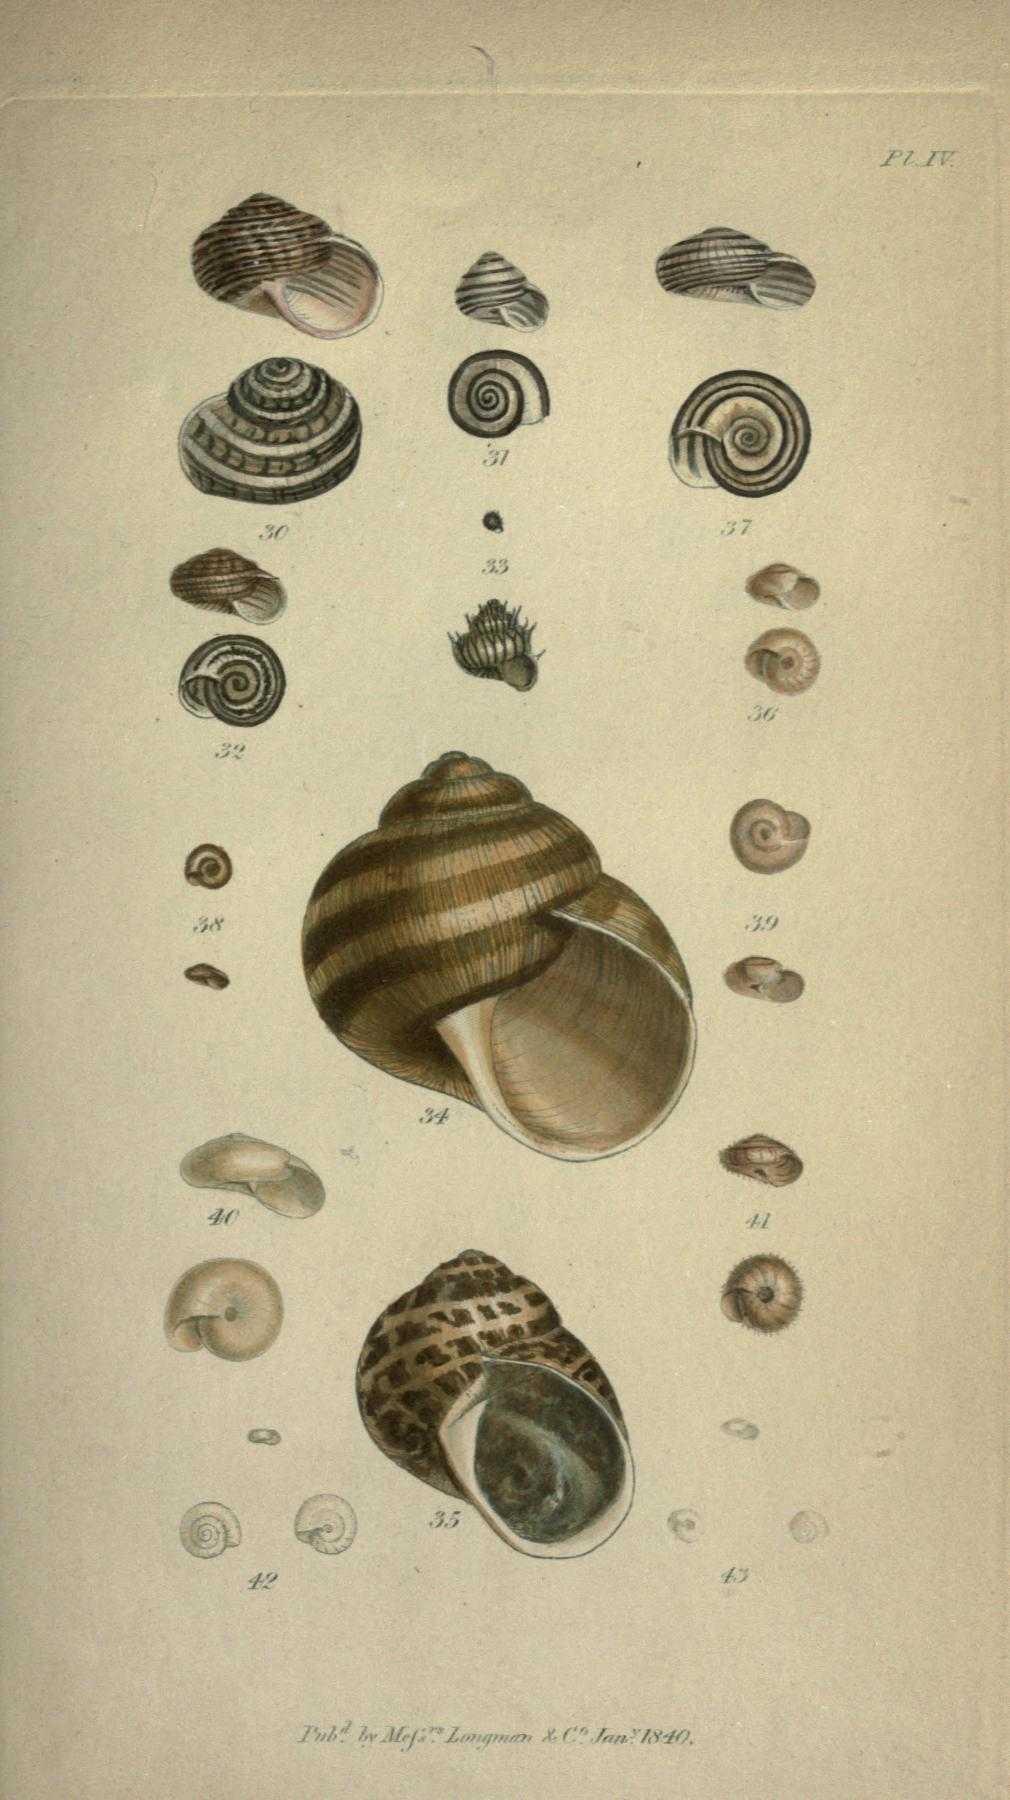 Plate IV, figures 30 through 43. Page 333.